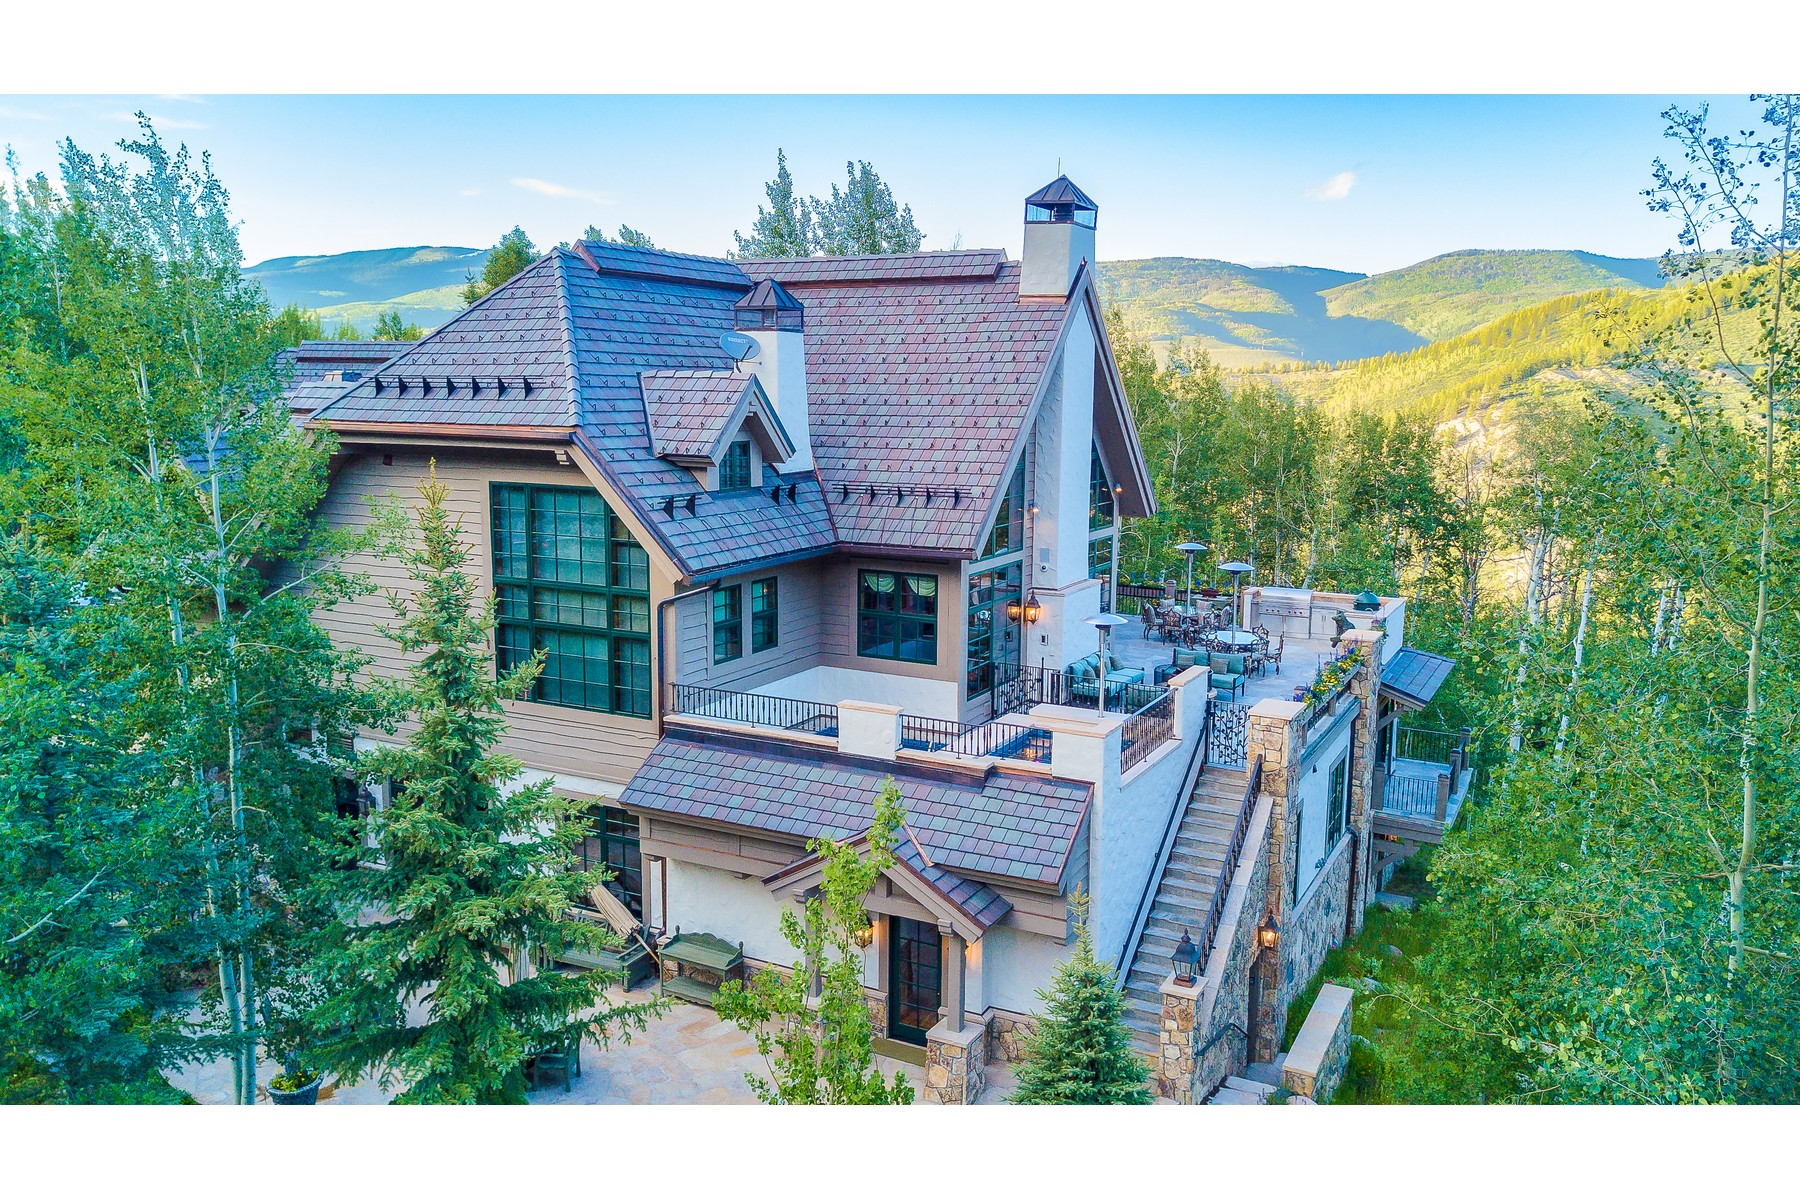 Casa Unifamiliar por un Venta en Extensive new construction with state-of-the-art technology 22 Strawberry Park Road Beaver Creek, Colorado 81620 Estados Unidos